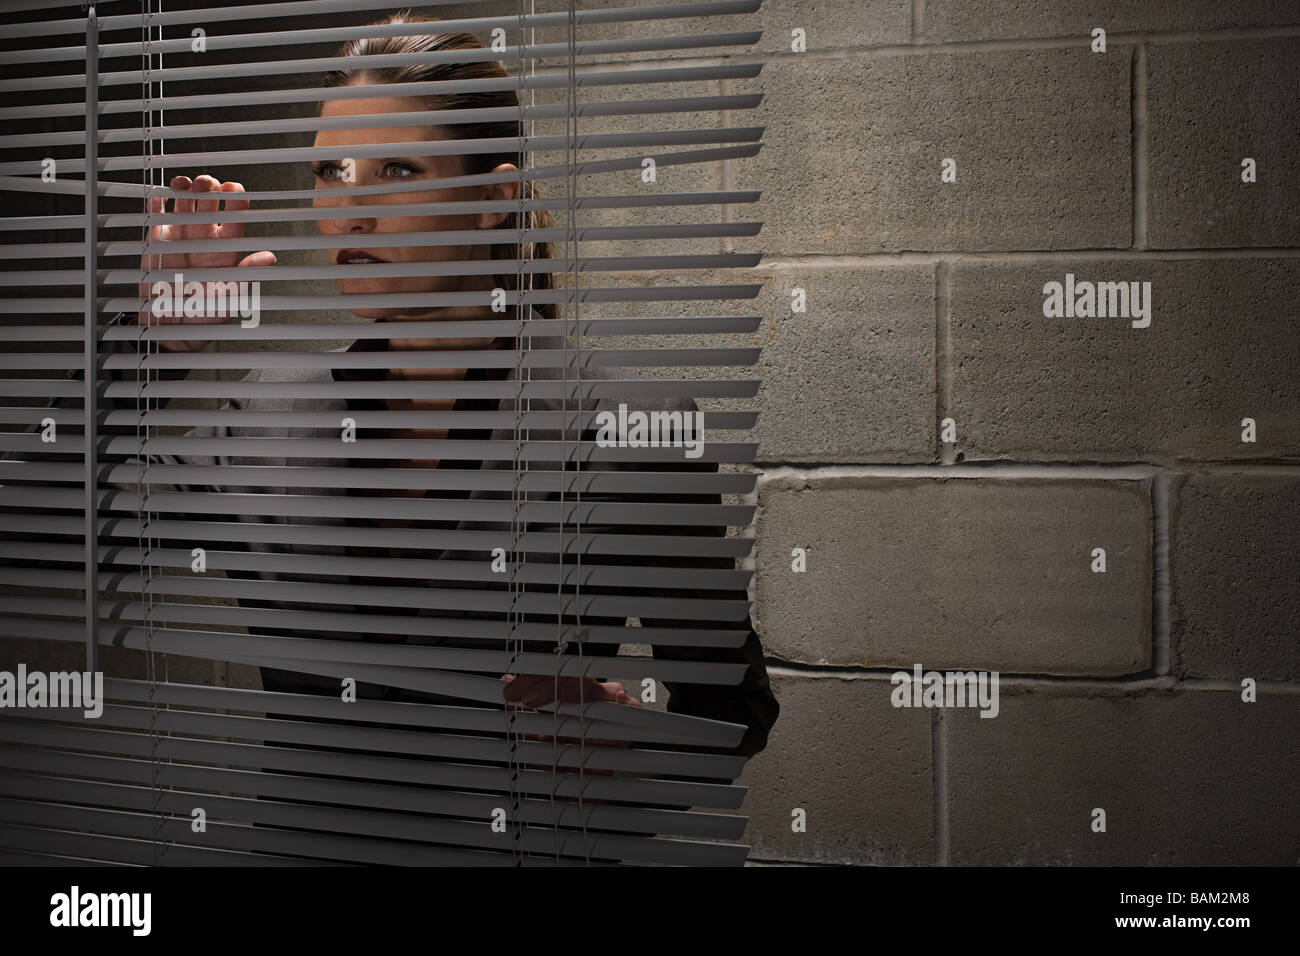 Woman looking through blinds - Stock Image